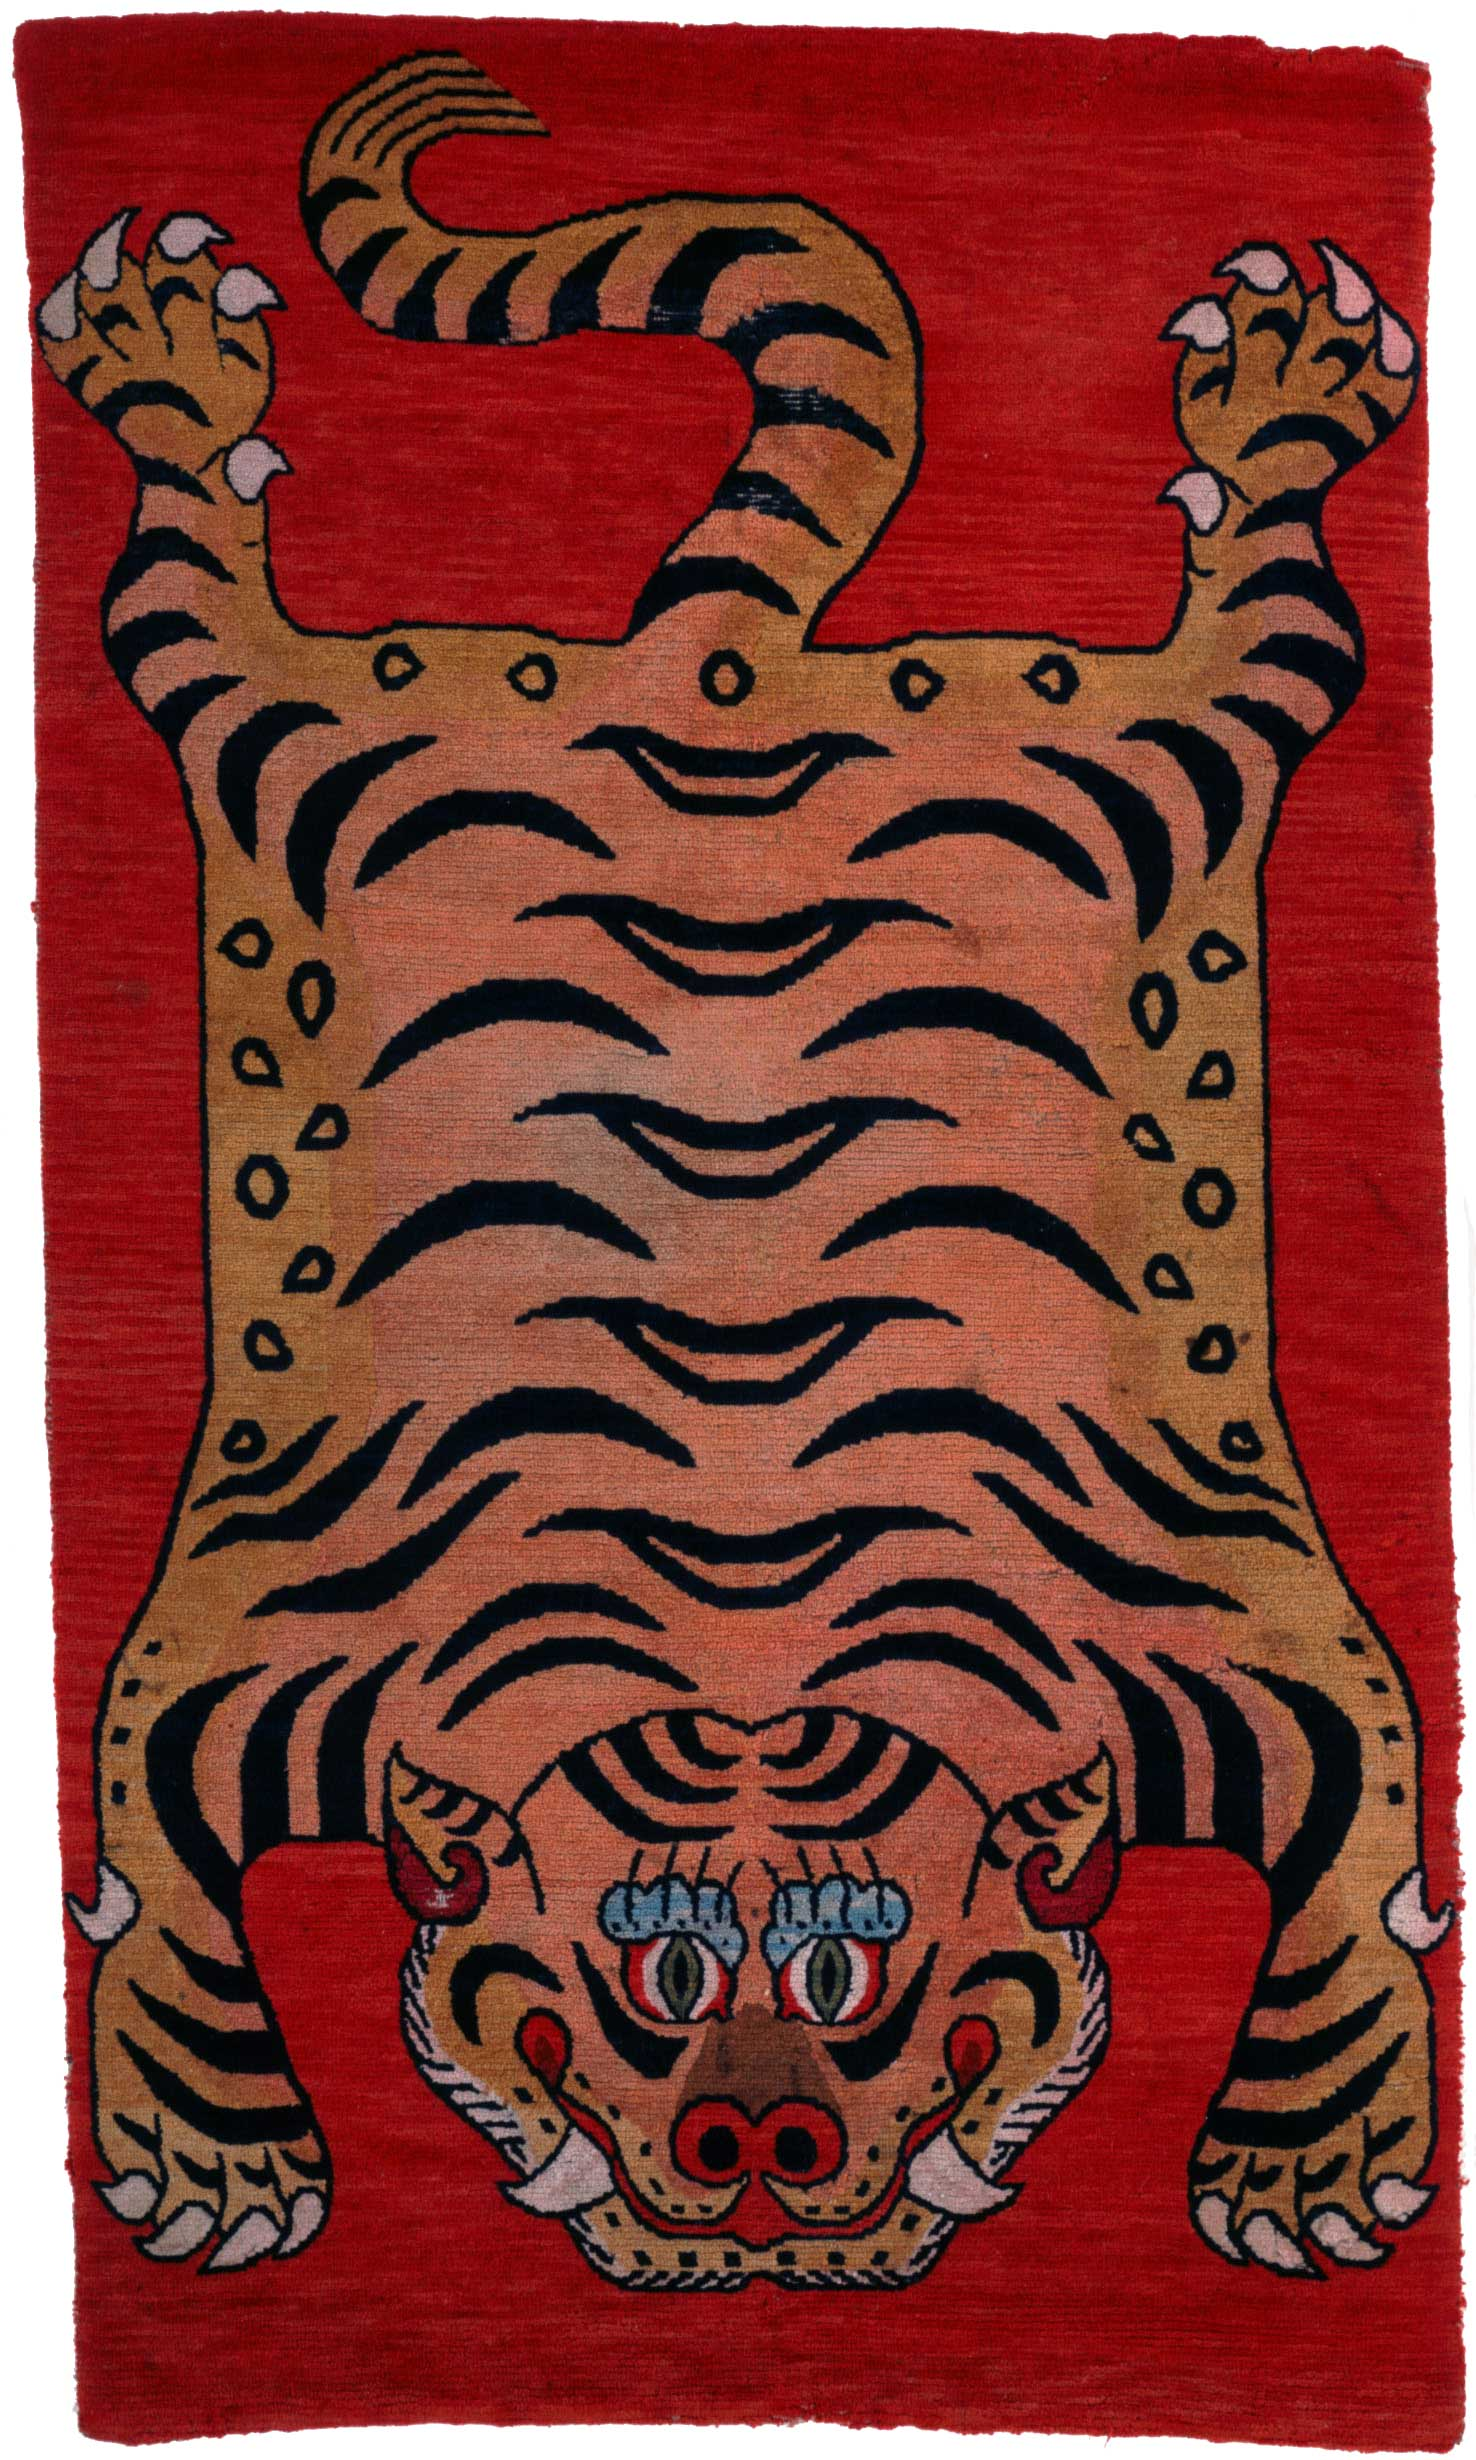 19th Century Tibetan Tiger Rug - Wool and Cotton - Purchase 1976 Charles W. Engelhard Bequest Fund - Collection of the Newark Museum | Image courtesy of the Newark Museum.